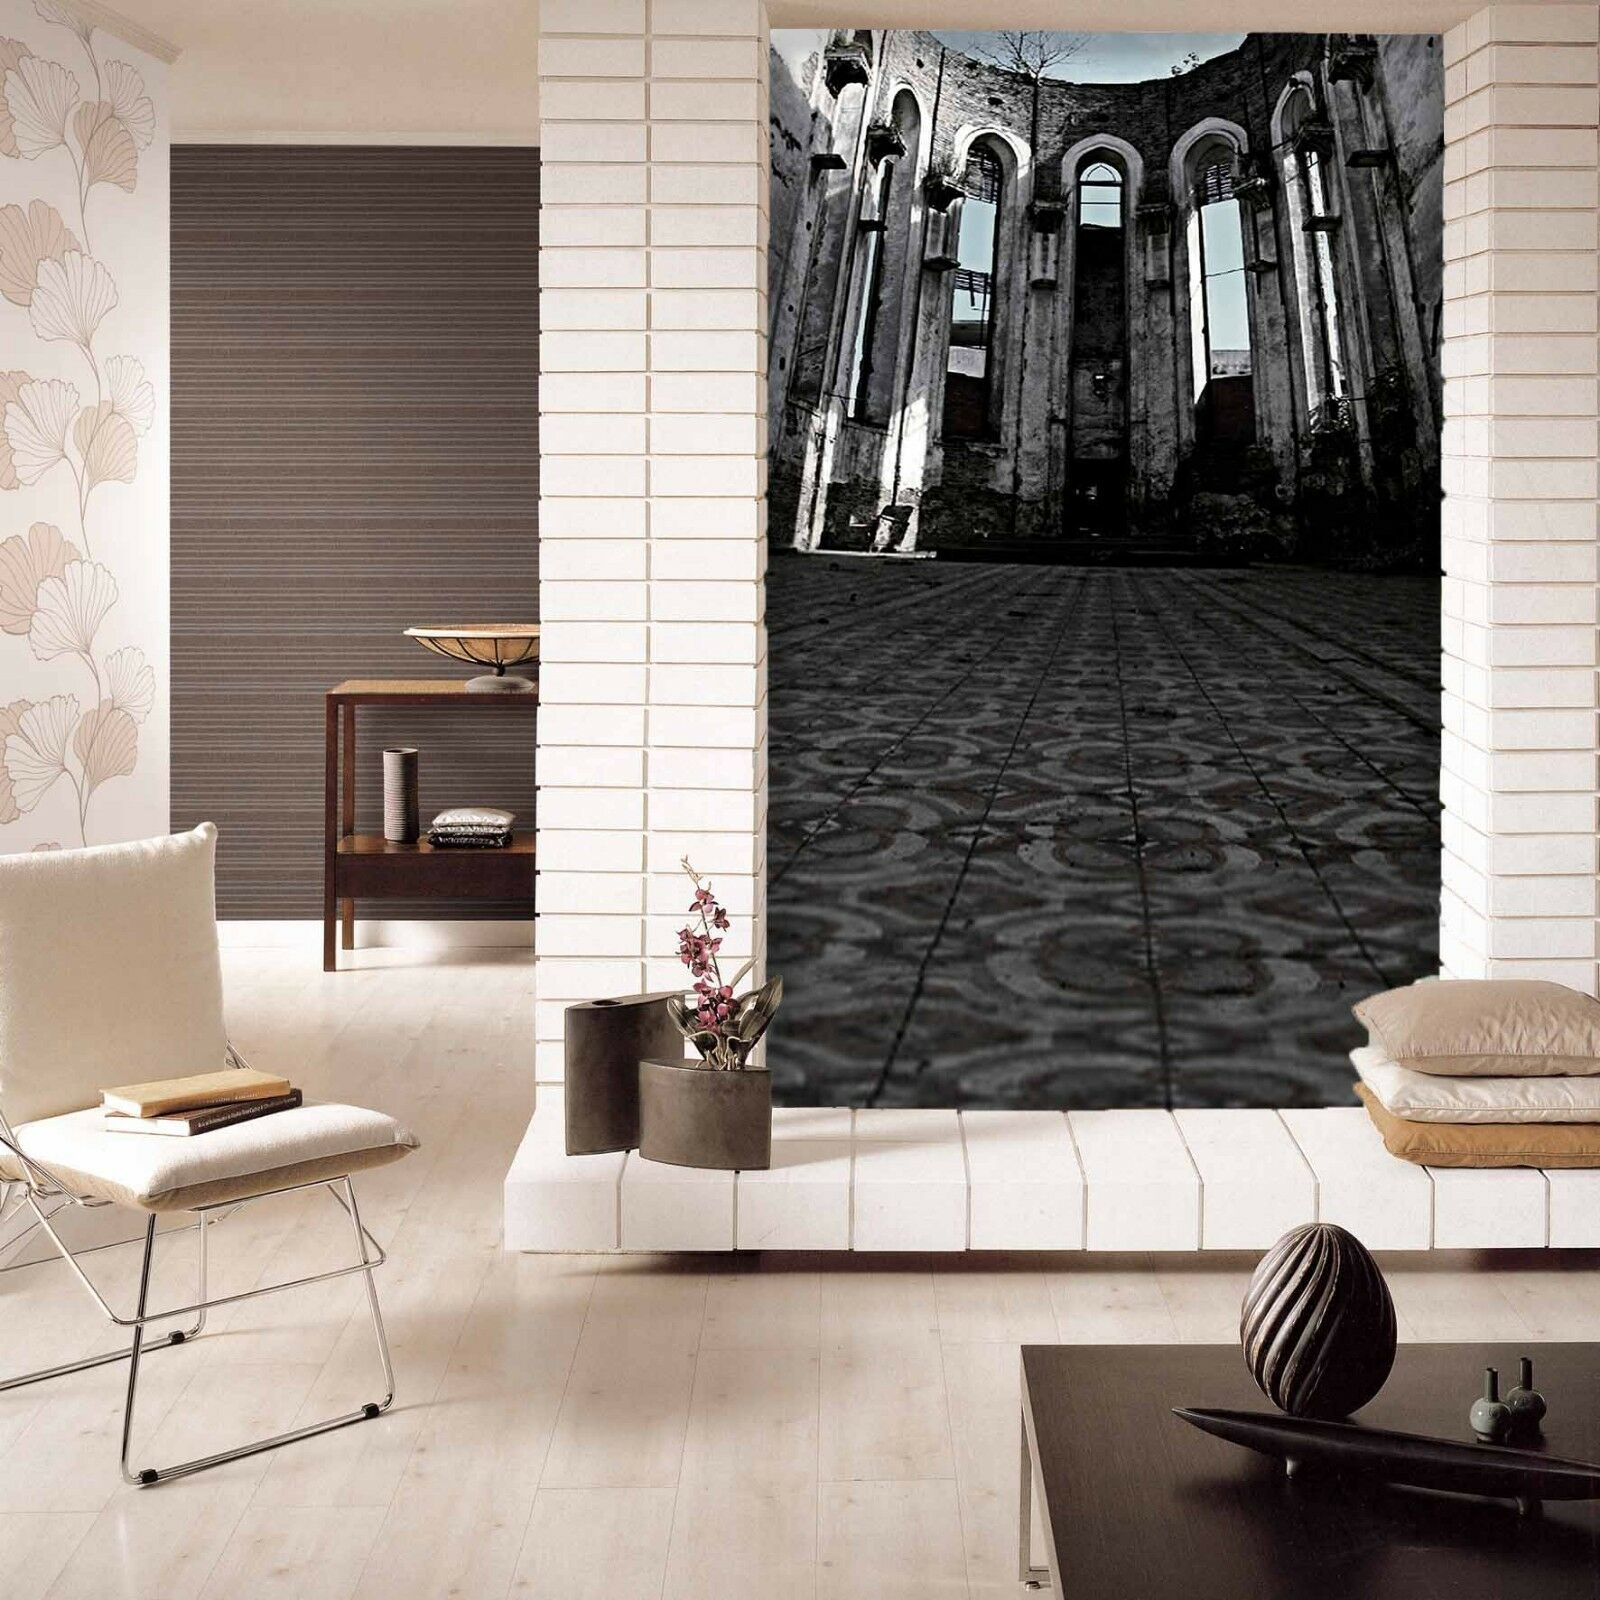 3D Old Building 562 Wall Paper Wall Print Decal Wall Deco Indoor Mural Summer